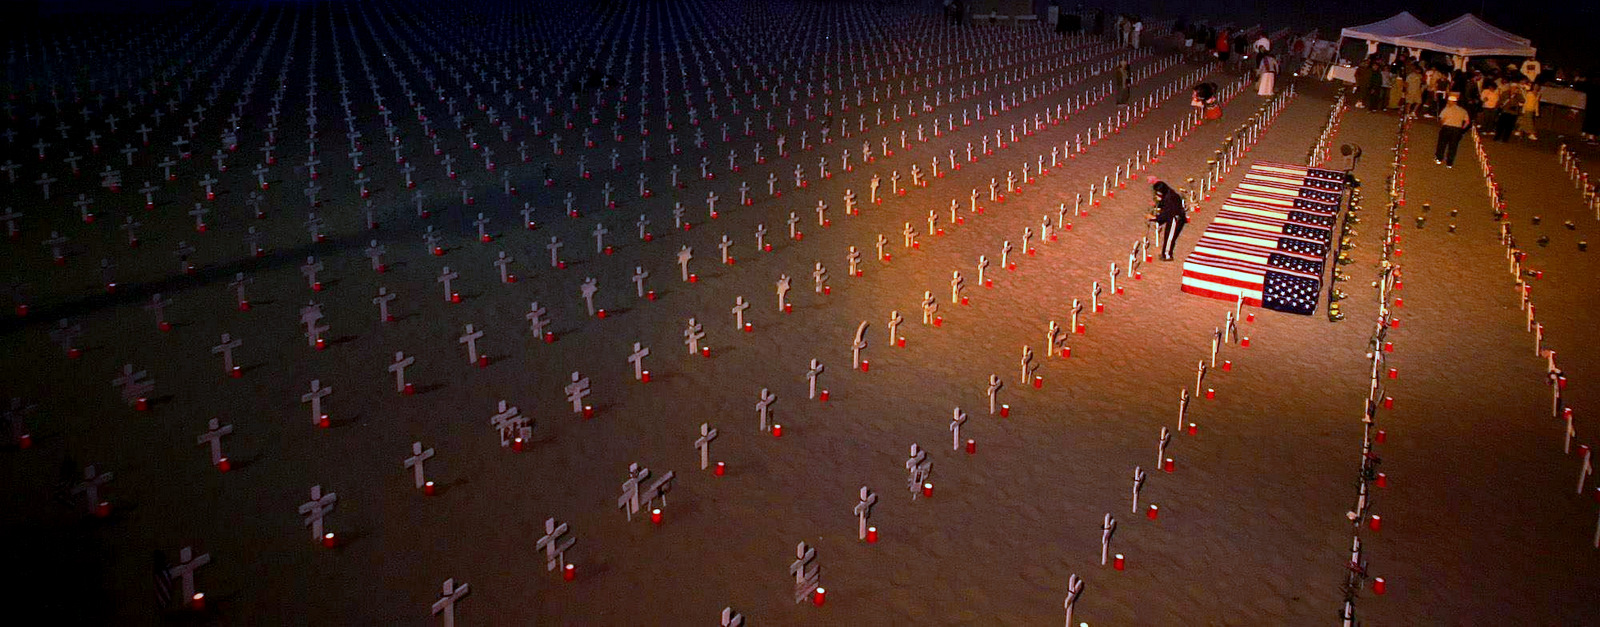 A volunteer puts flowers next to a cross at the Arlington West Iraq war memorial display on the beach next to the Santa Monica Pier in Santa Monica, Calif., on Saturday May 27, 2006. (AP Photo/Stefano Paltera)